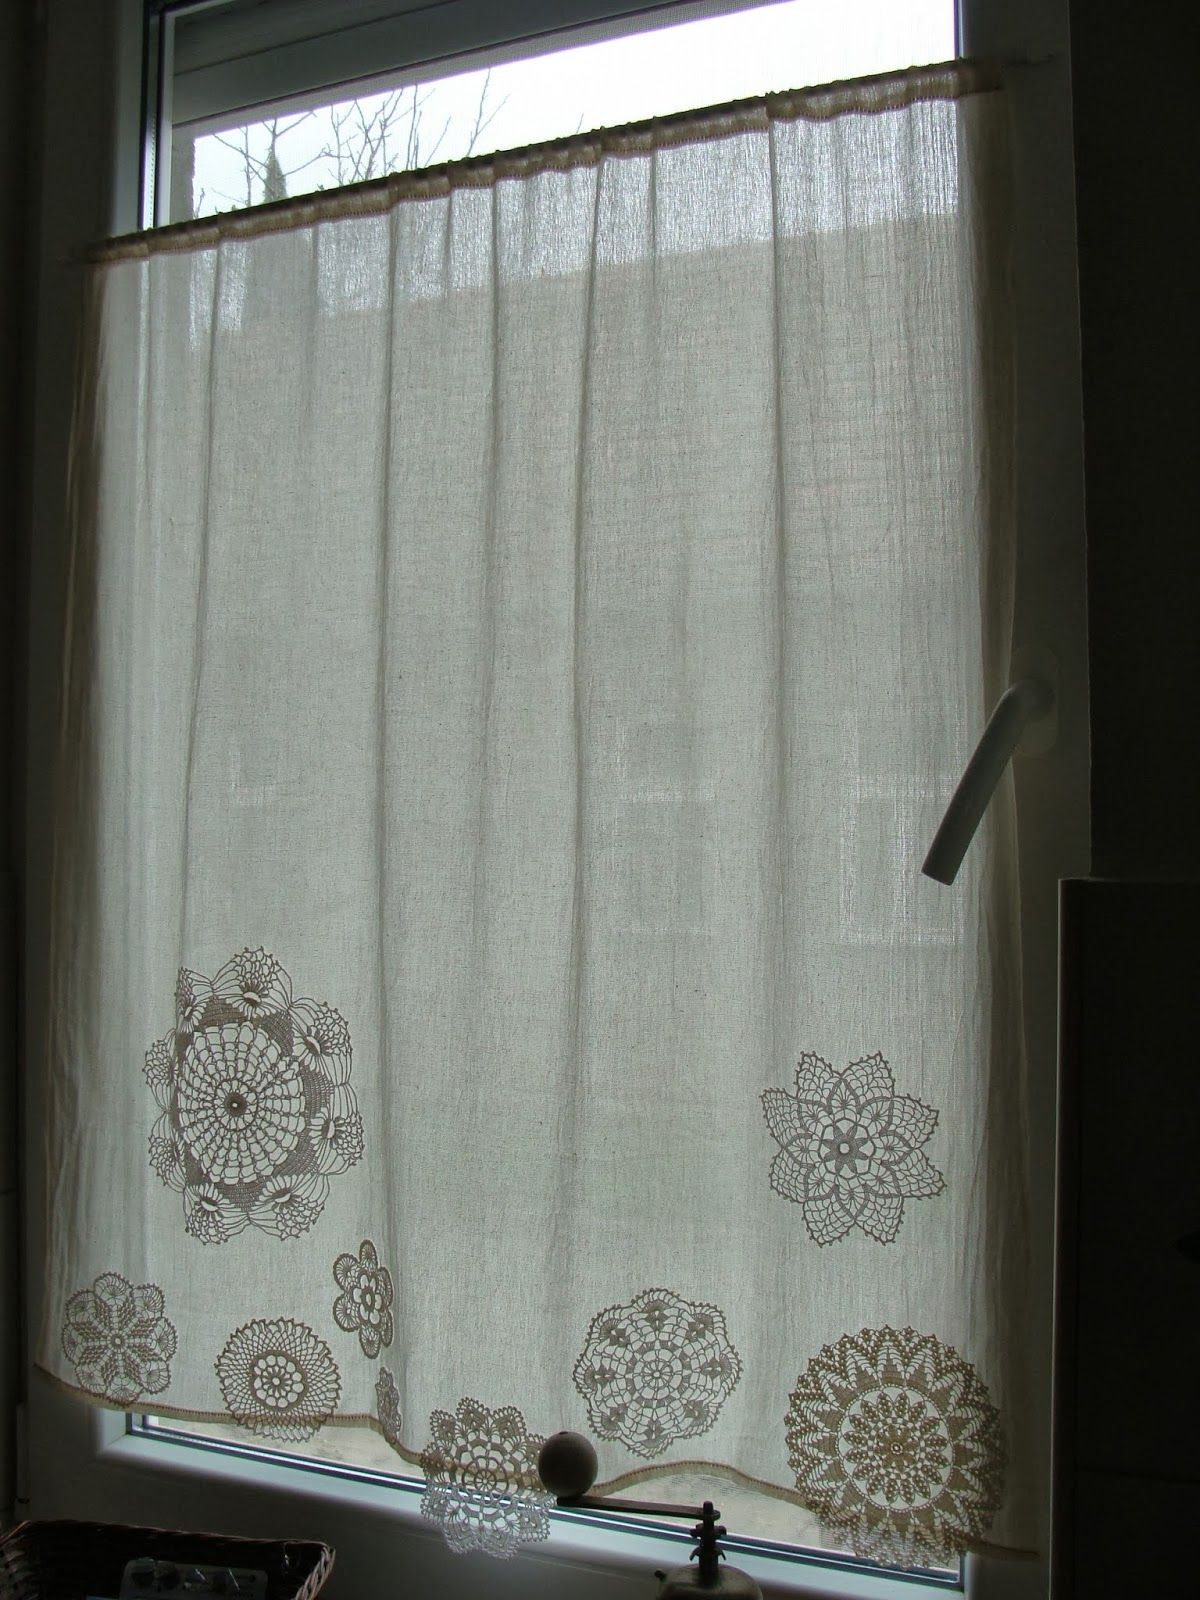 Visillos Cortinas Cocina Handmade From Ladolli Doily Curtain Декор Pinterest